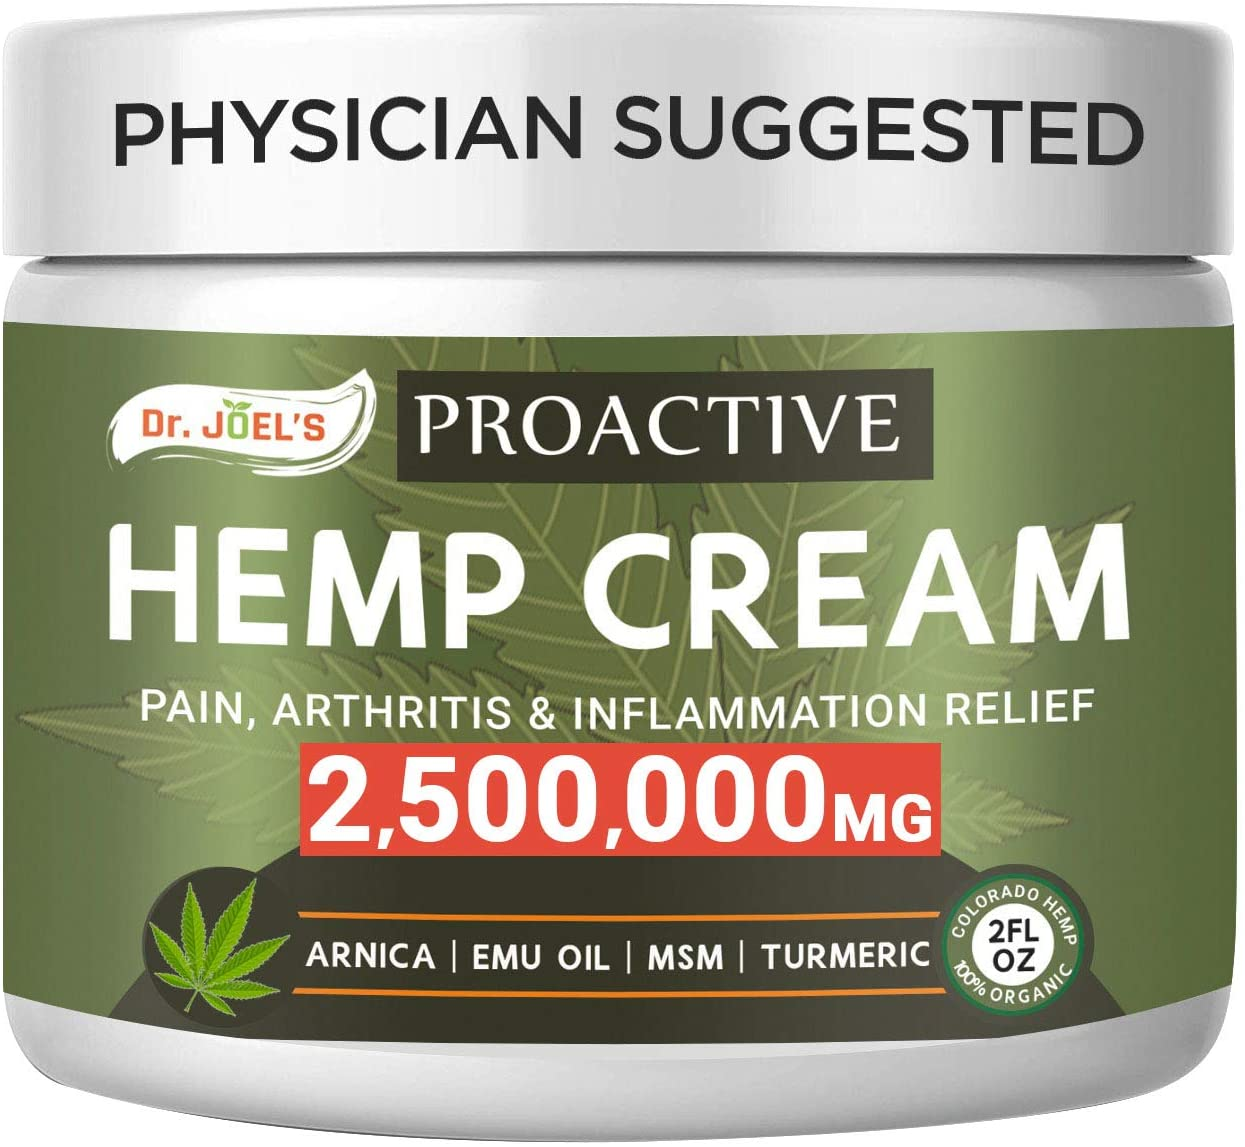 Proactive Pain Relief Cream - 2,500,000 Extract - Maximum Strength Muscle, Joint & Arthritis Relief Cream - Made & 3rd Party Tested in USA